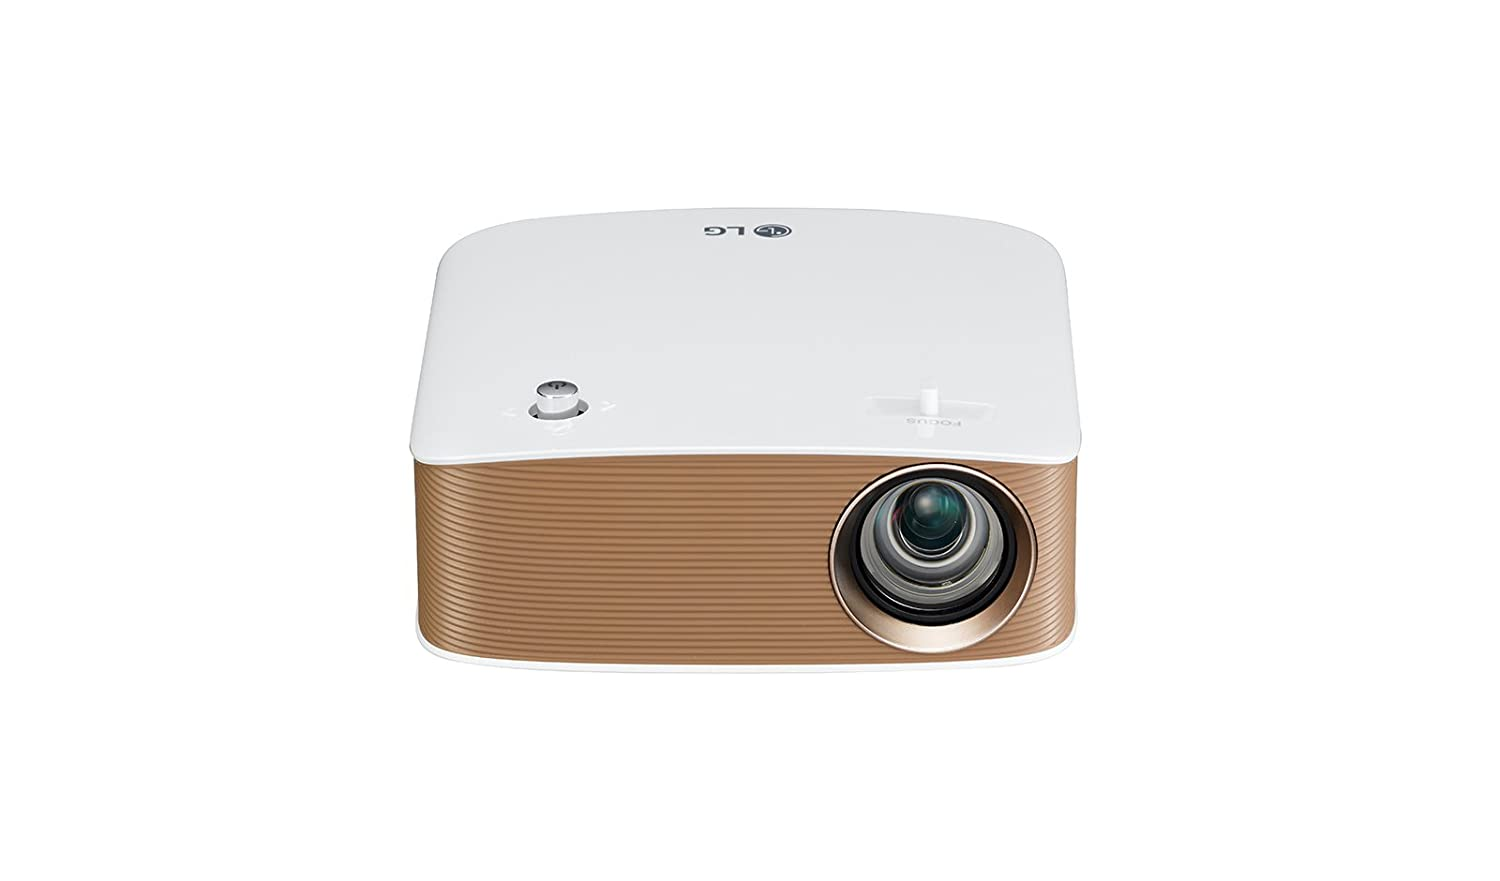 TALLA HD. LG PH150G - Proyector Minibeam Portátil con batería incorporada (HD 1280x720, LED, contraste 100,000:1, 130 lúmenes) - Blanco [VERSION UK]